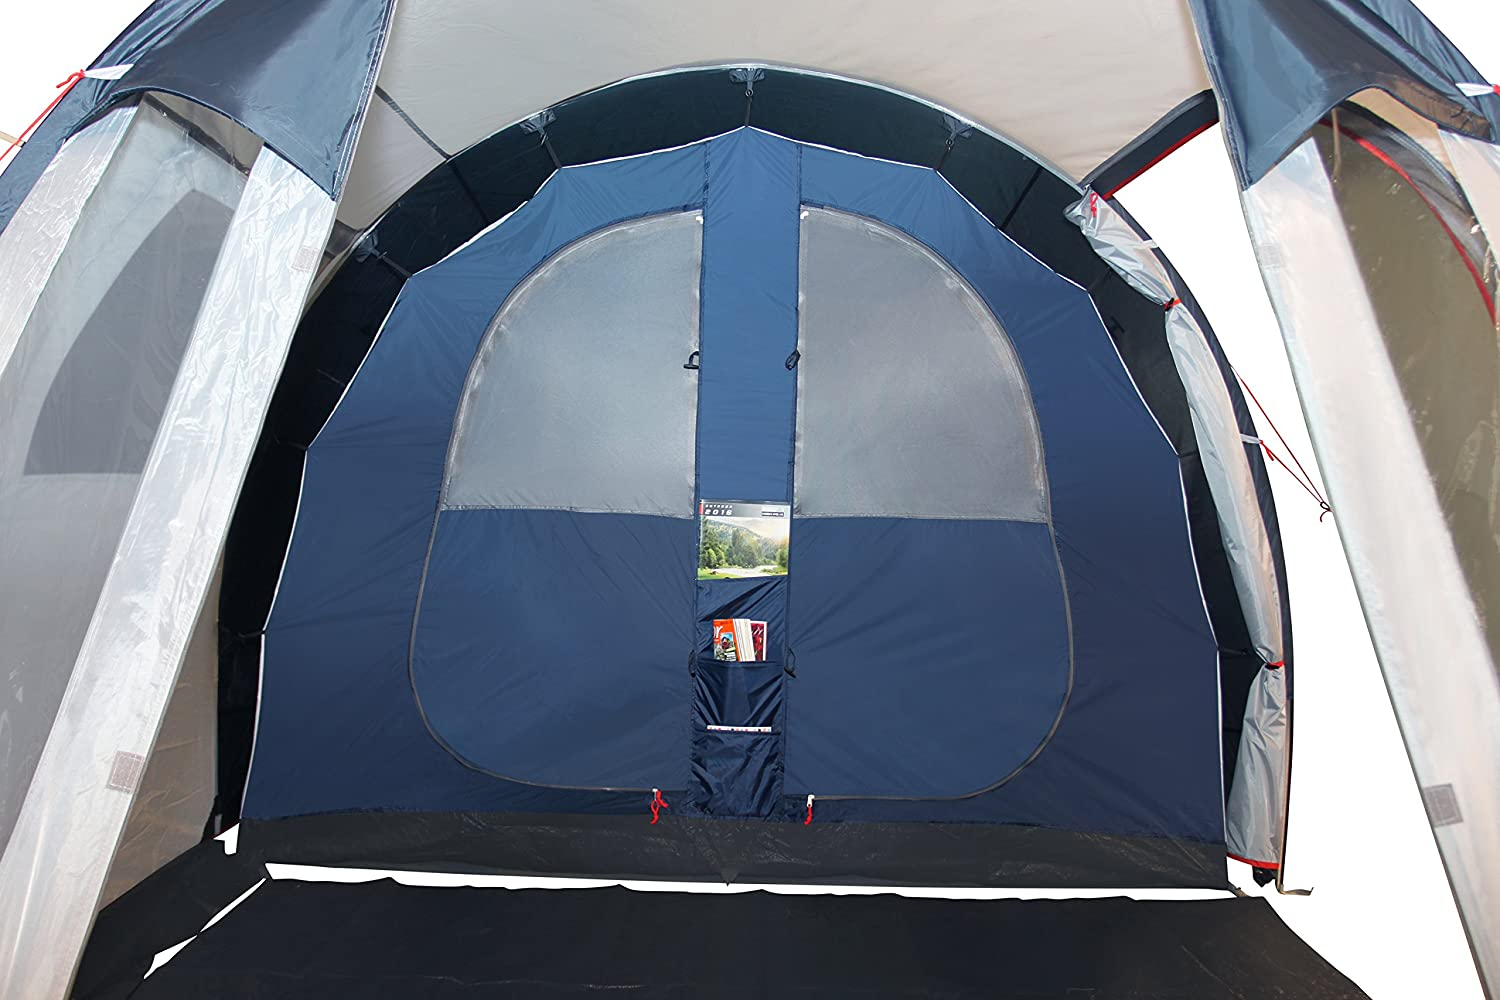 High Peak Waterproof Ancona Unisex Outdoor Tunnel Tent Amazon.co.uk Sports u0026 Outdoors : factory seconds tents - memphite.com